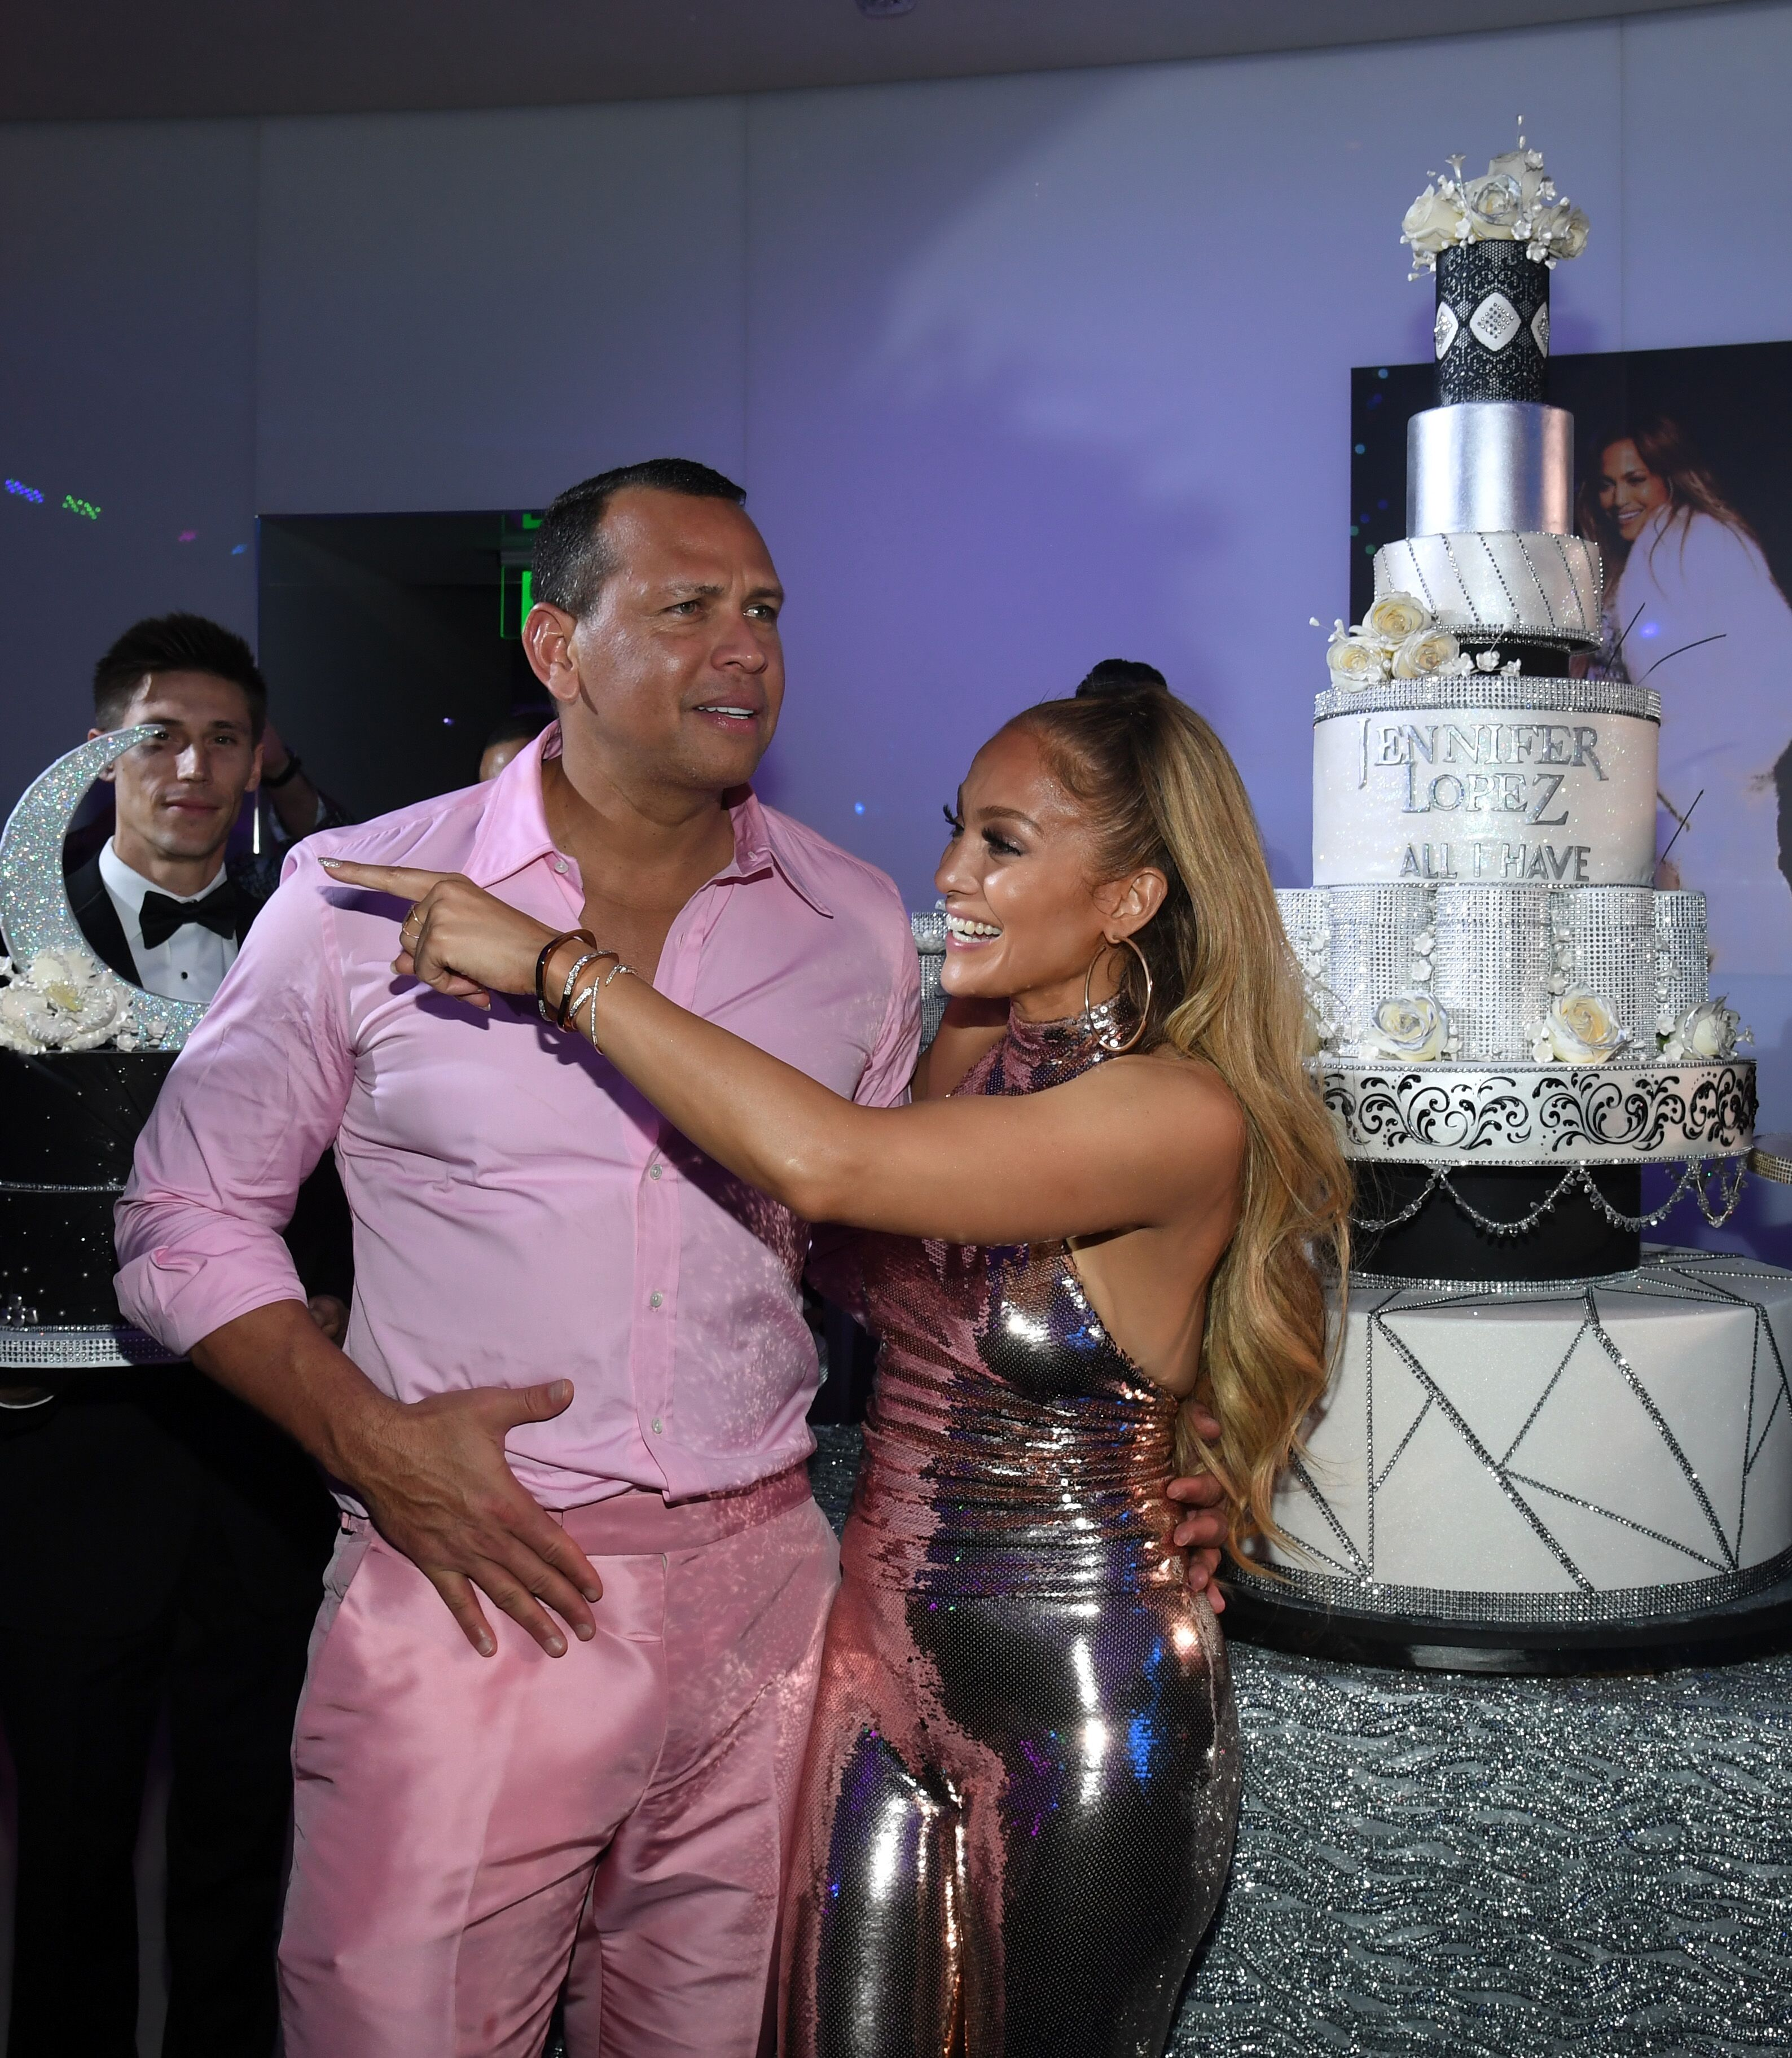 Alex Rodriguez and Jennifer Lopez at the singer's birthday celebration | Source: Getty Images/GlobalImagesUkraine